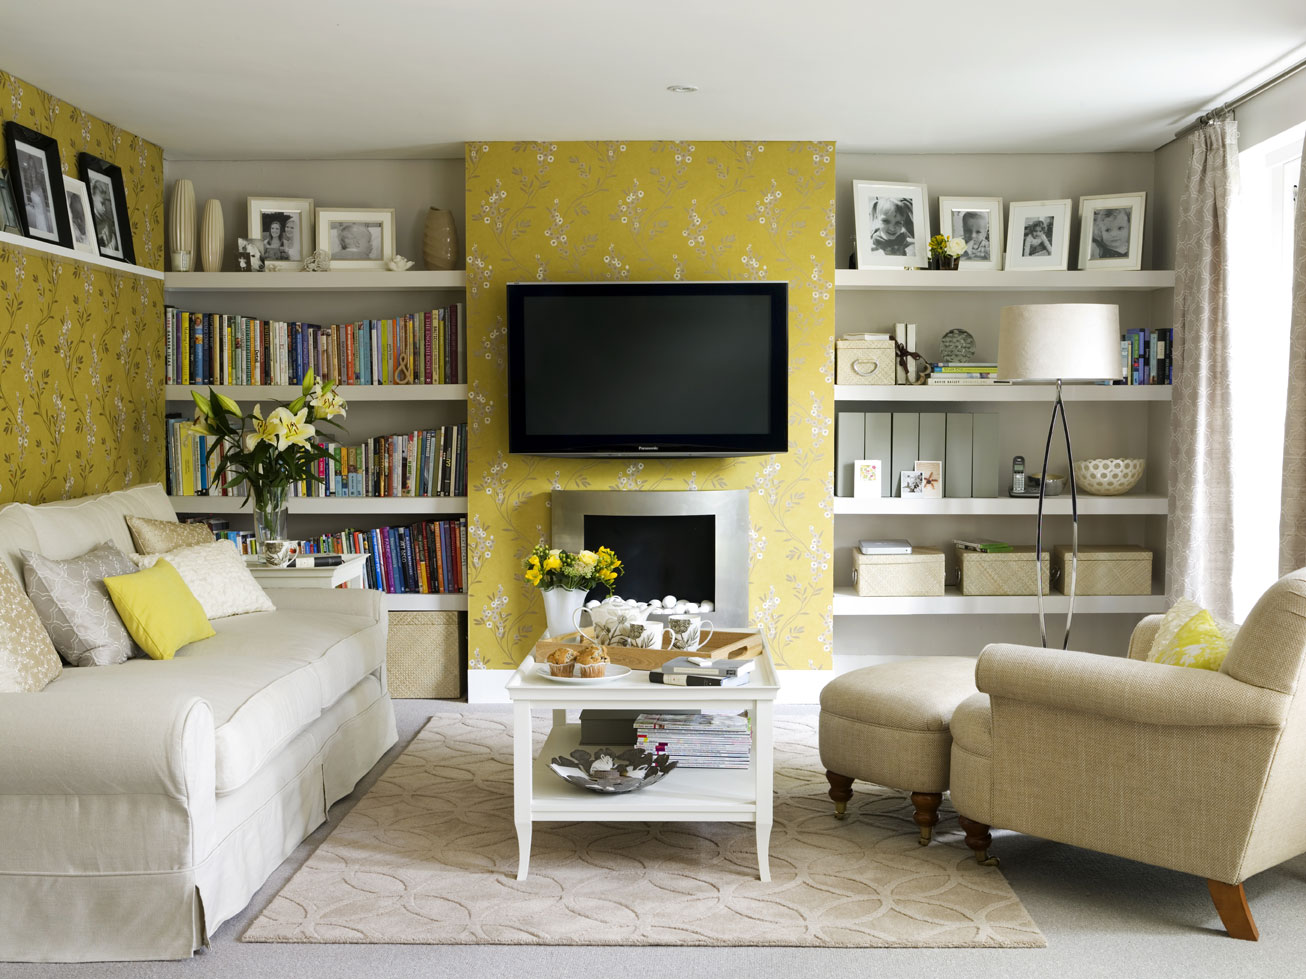 Of Small Living Room Decorating Yellow Room Interior Inspiration 55 Rooms For Your Viewing Pleasure